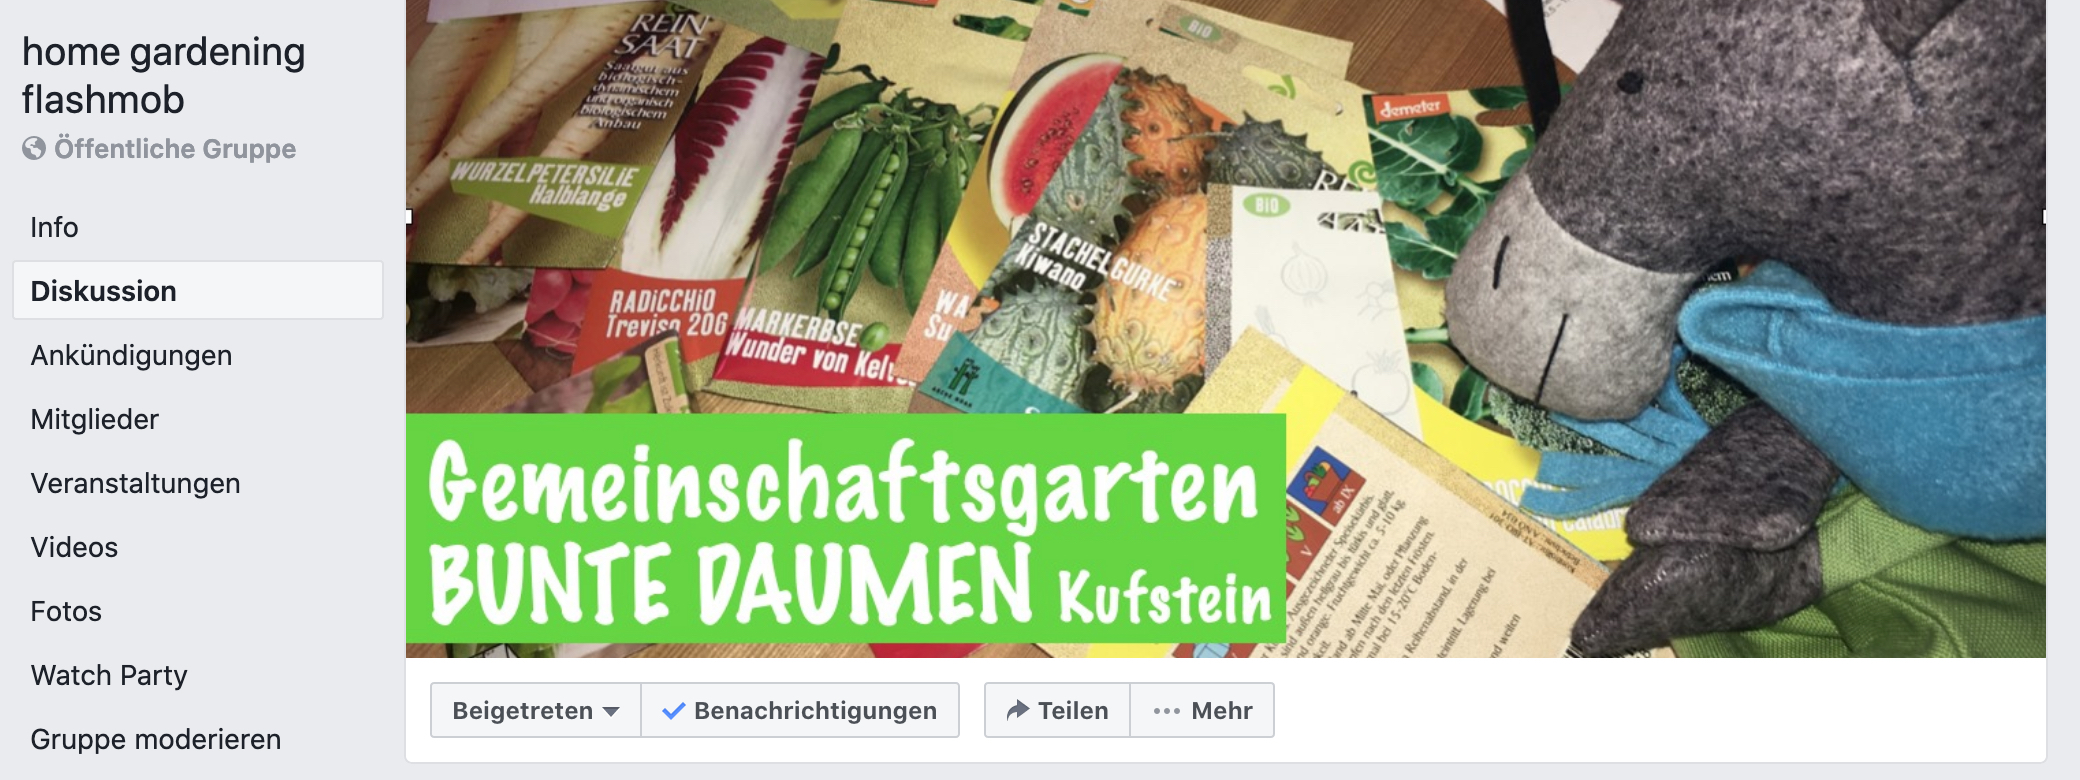 "Facebook Gruppe ""home gardening flashmob"""